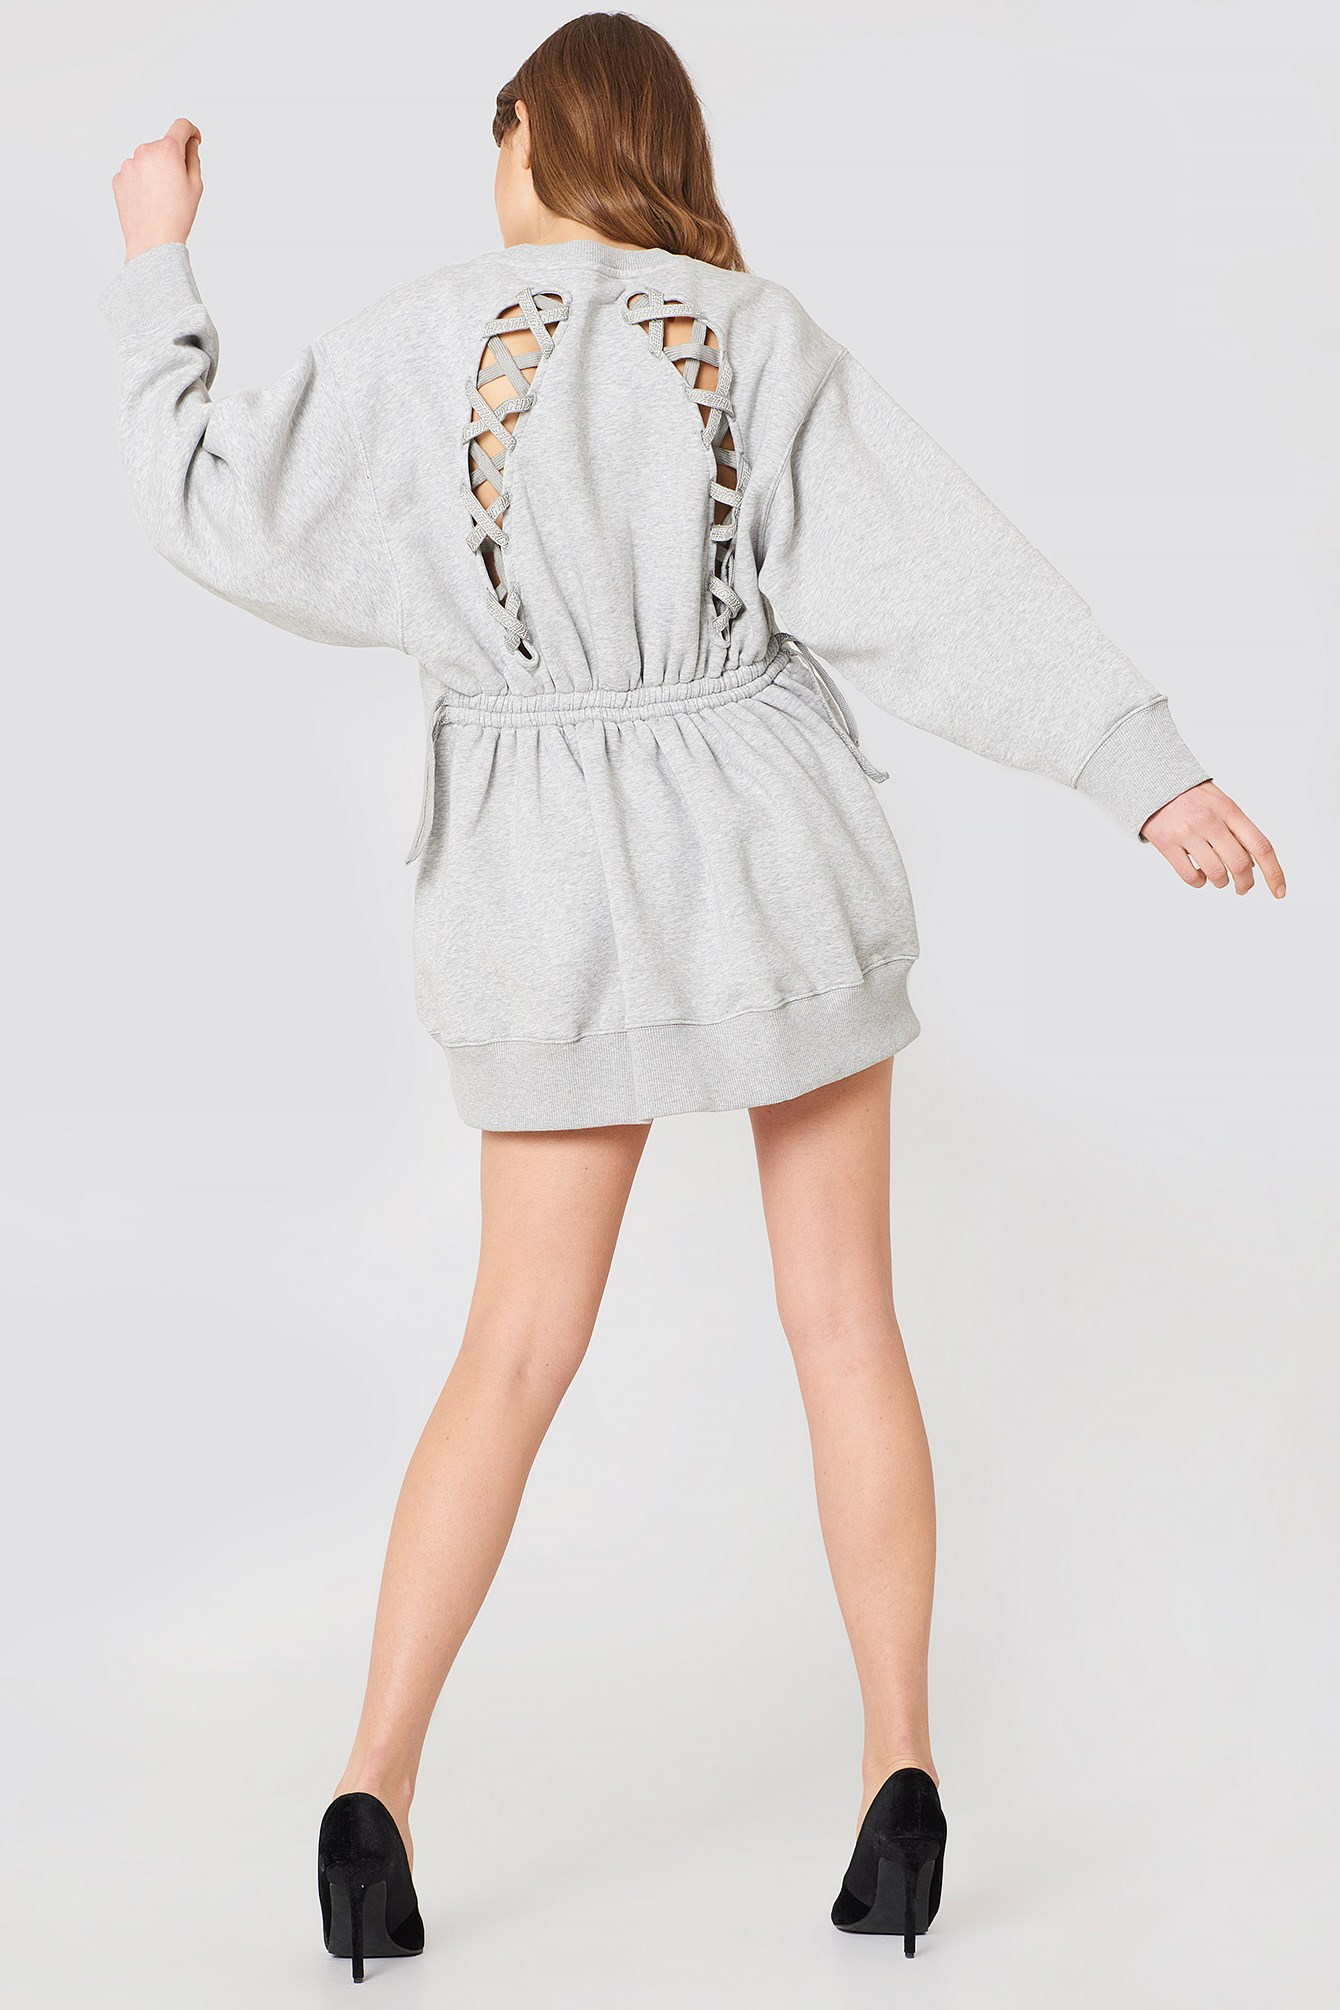 Gigi Hadid Open Back LS Sweatshirt Dress NA-KD.COM